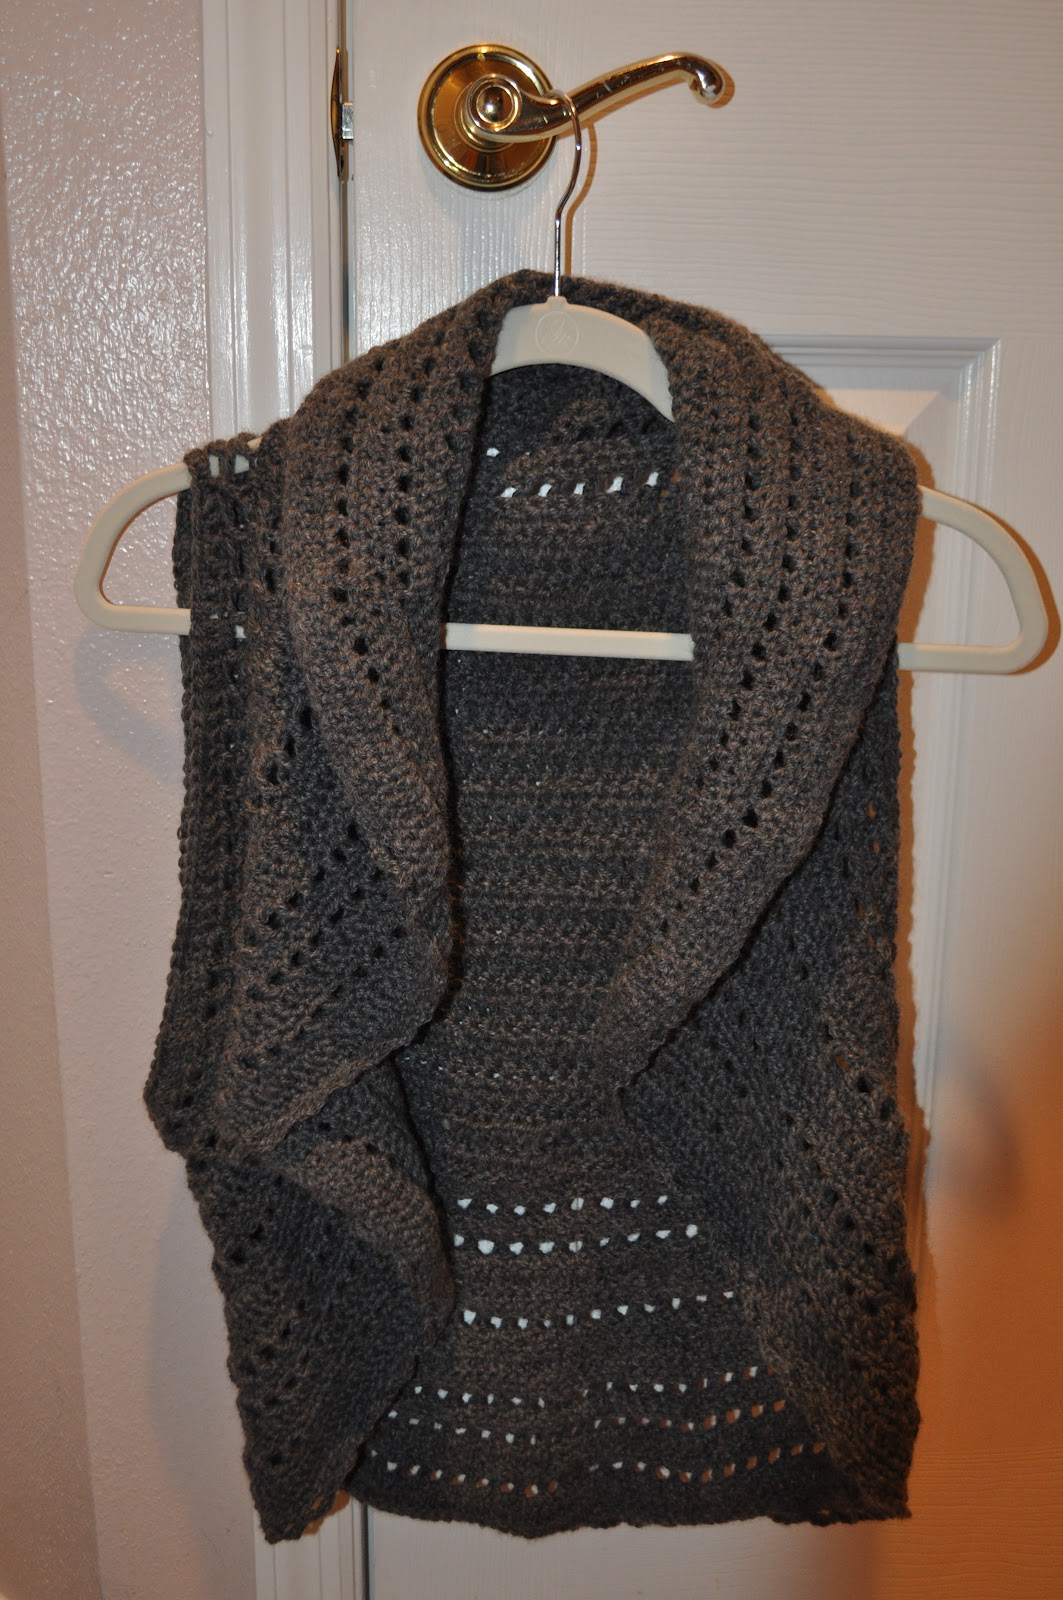 Mereknits rain and 32 this is the crochet circle vest shrug found on lazy t crochet it is one of the very few patterns i have purchased but once i saw it i had to have bankloansurffo Choice Image